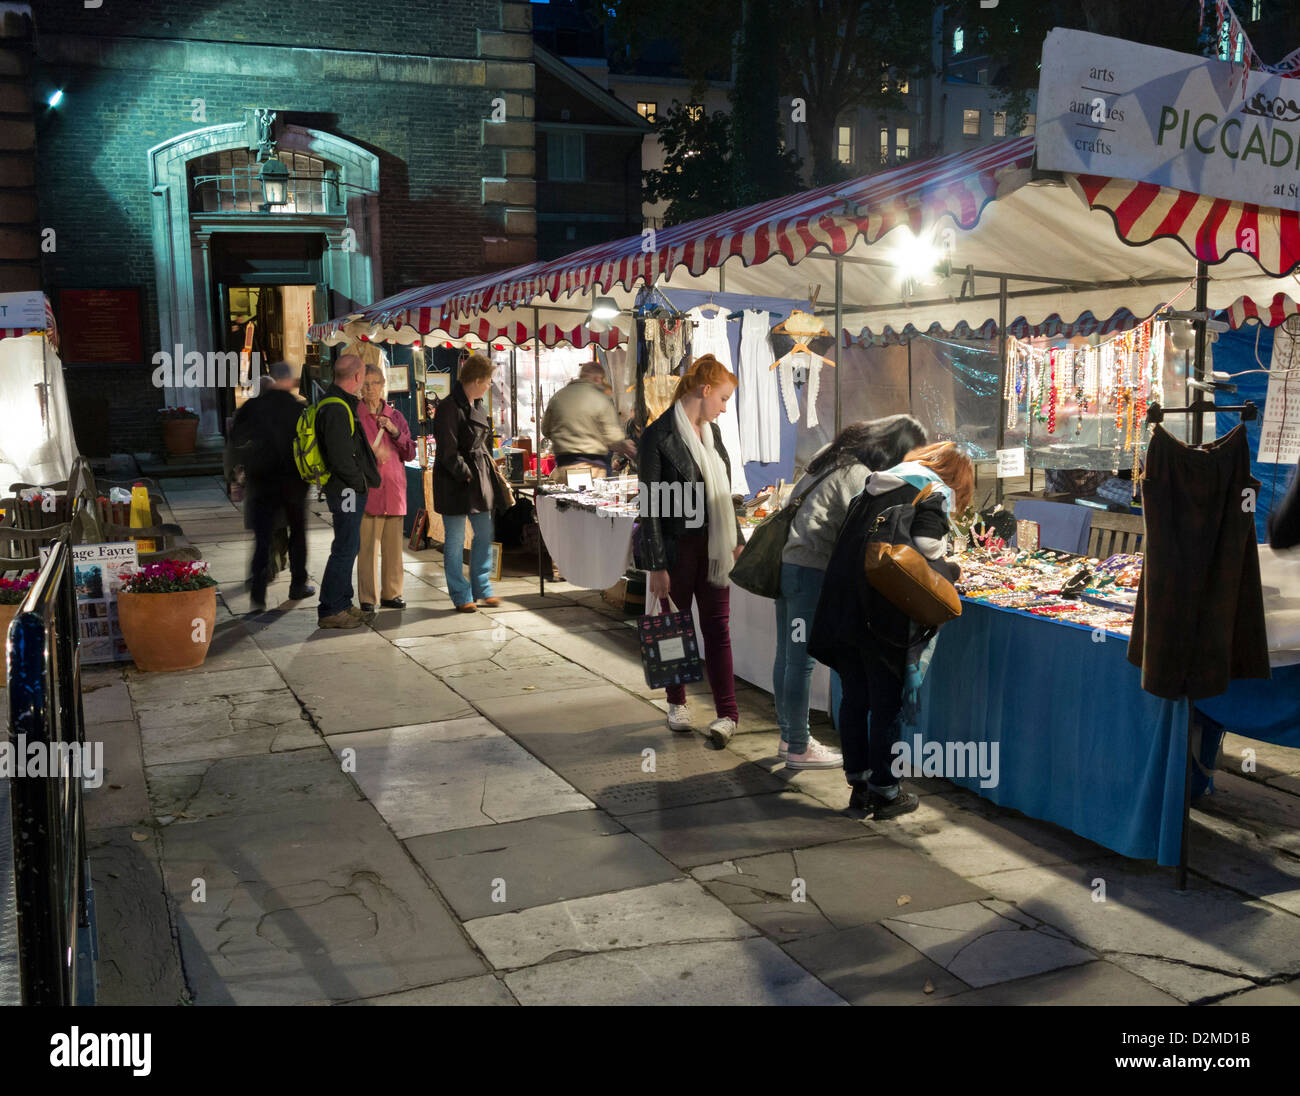 People browsing at stalls in Piccadilly Market in the grounds of St James's Church, London at night - Stock Image